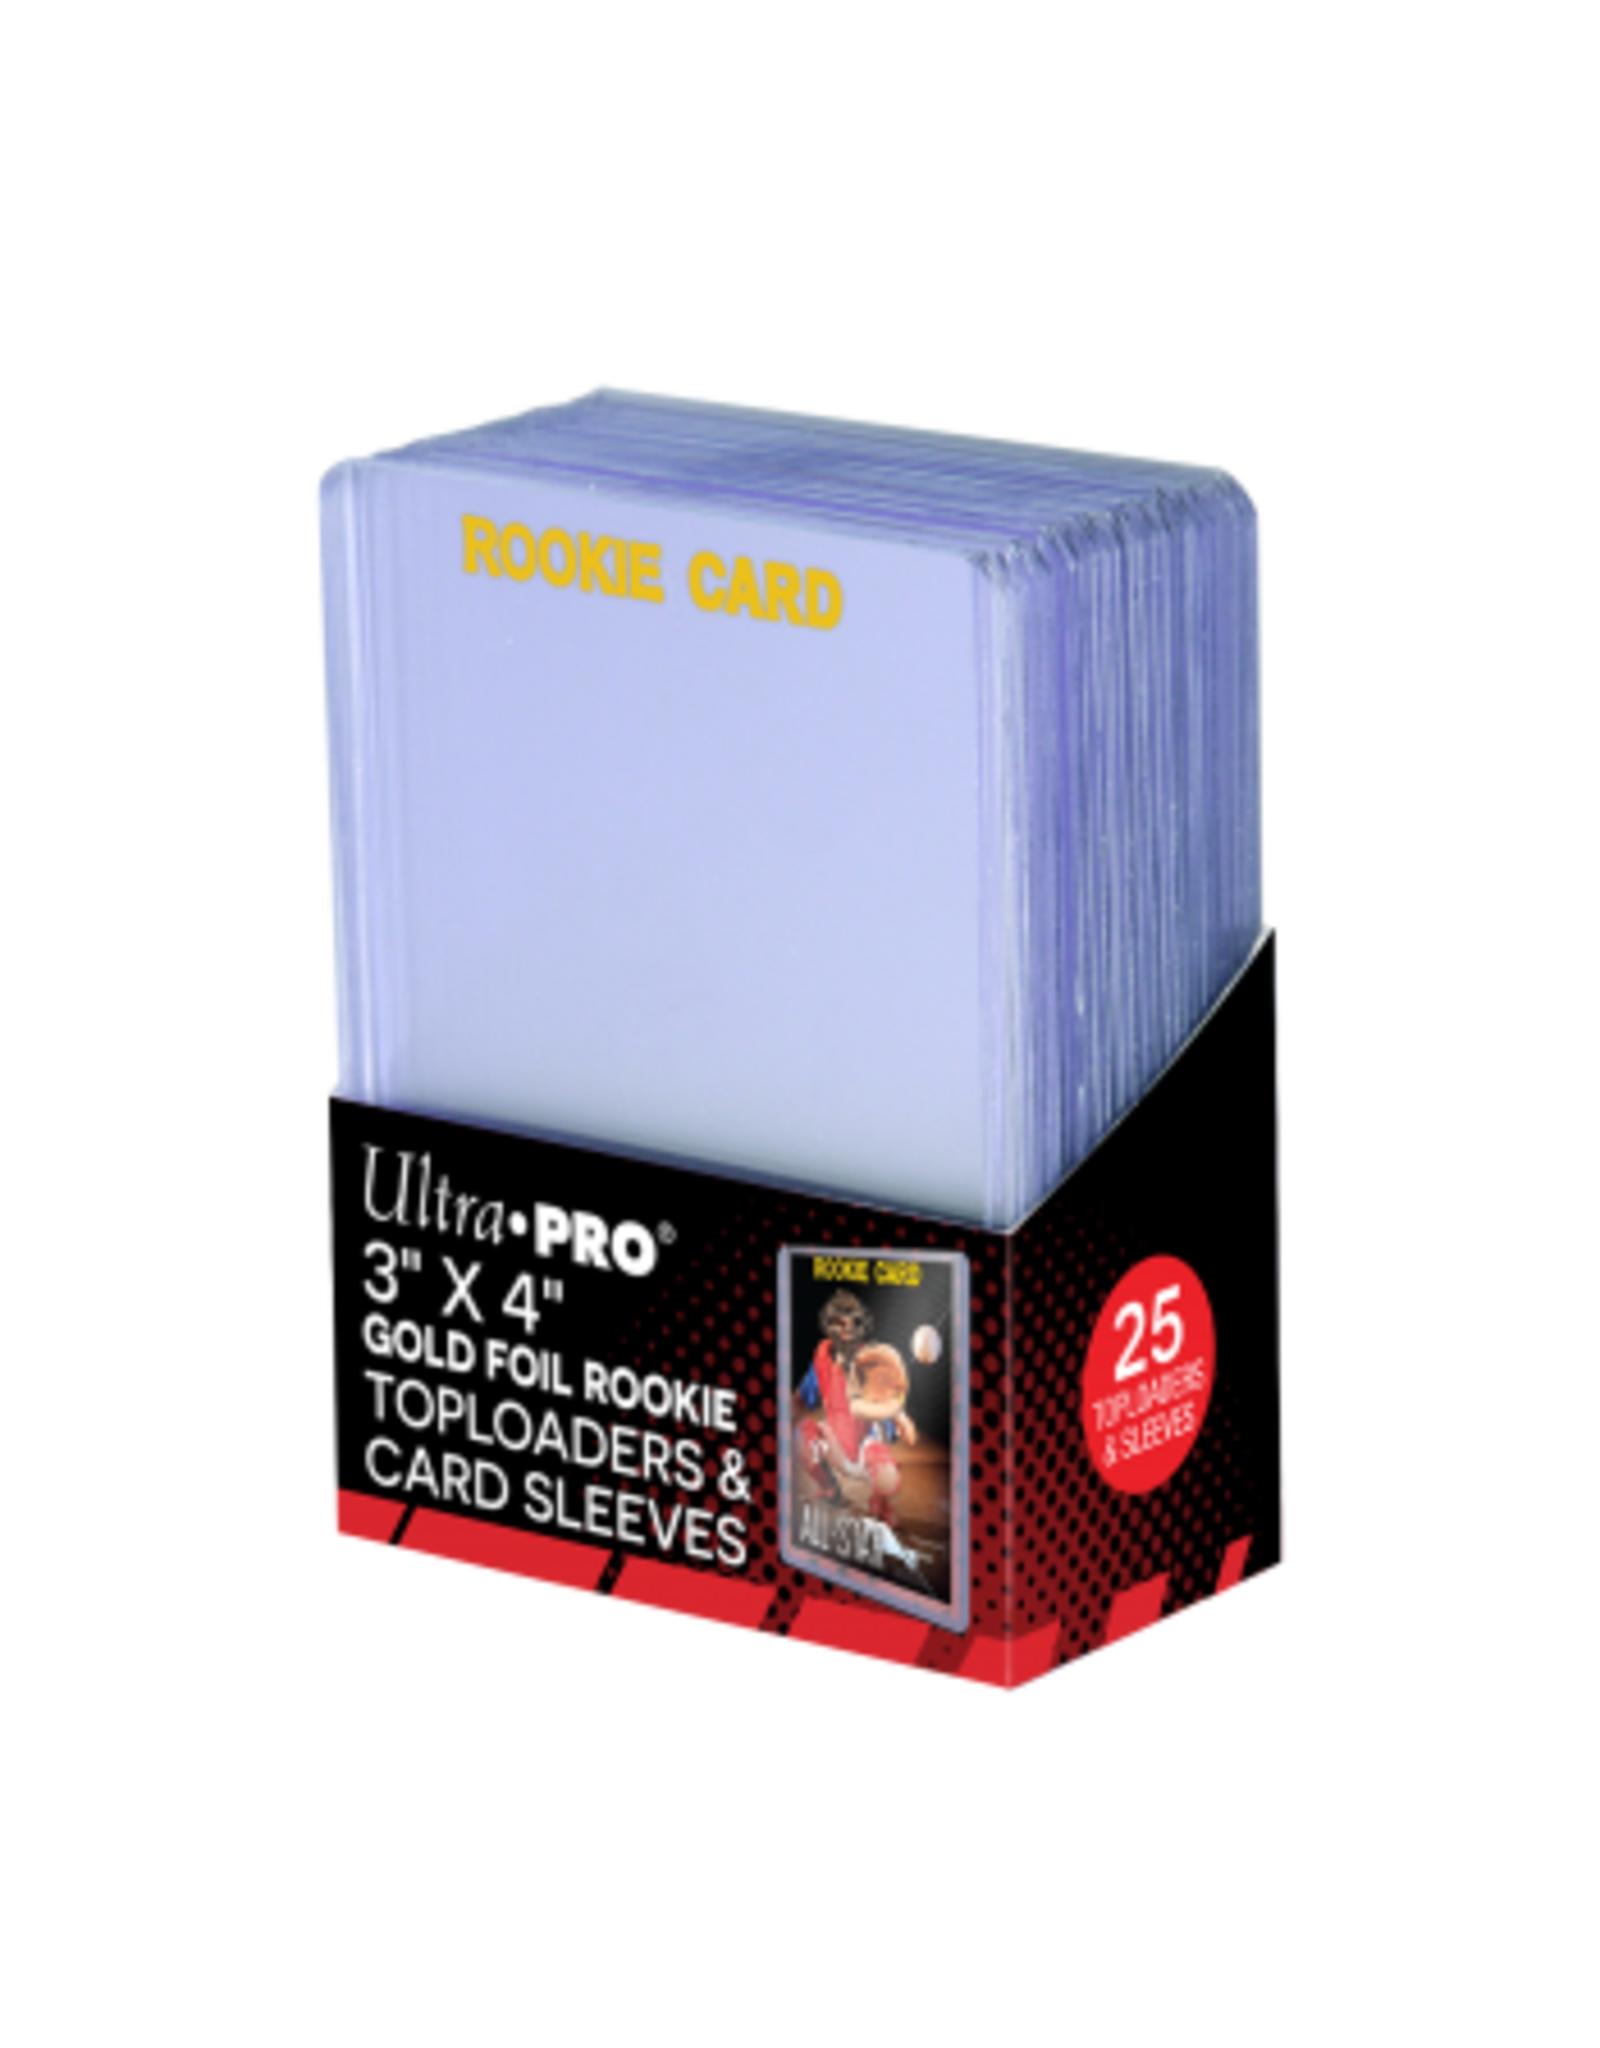 """ULTRA PRO 3"""" X 4"""" Rookie 35PT Toploader with Card Sleeves 25st"""